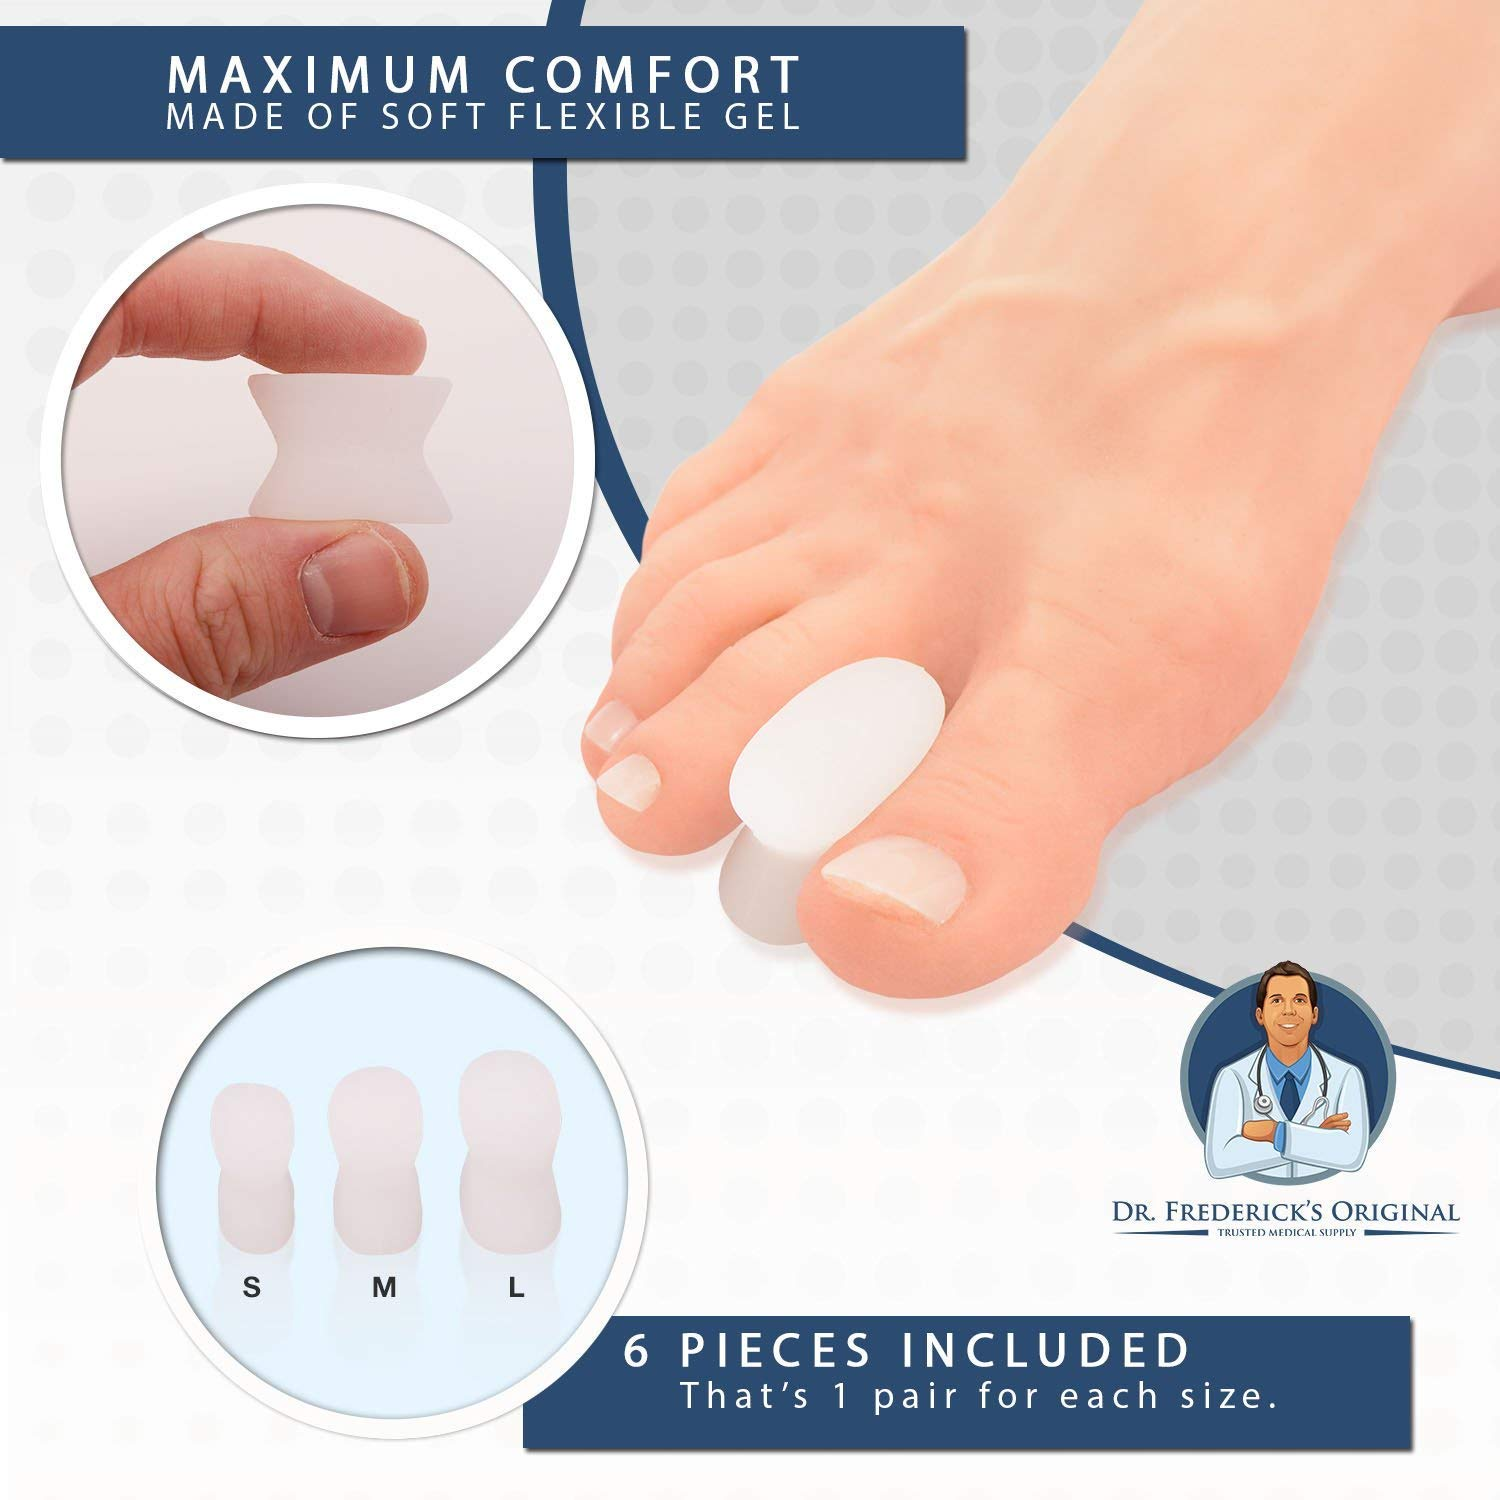 Amazon.com: Dr. Fredericks Original Gel Toe Separators - 6 Pieces - Variety Pack - Bunion Treatment - Small, Medium and Large Sizes: Health & Personal Care